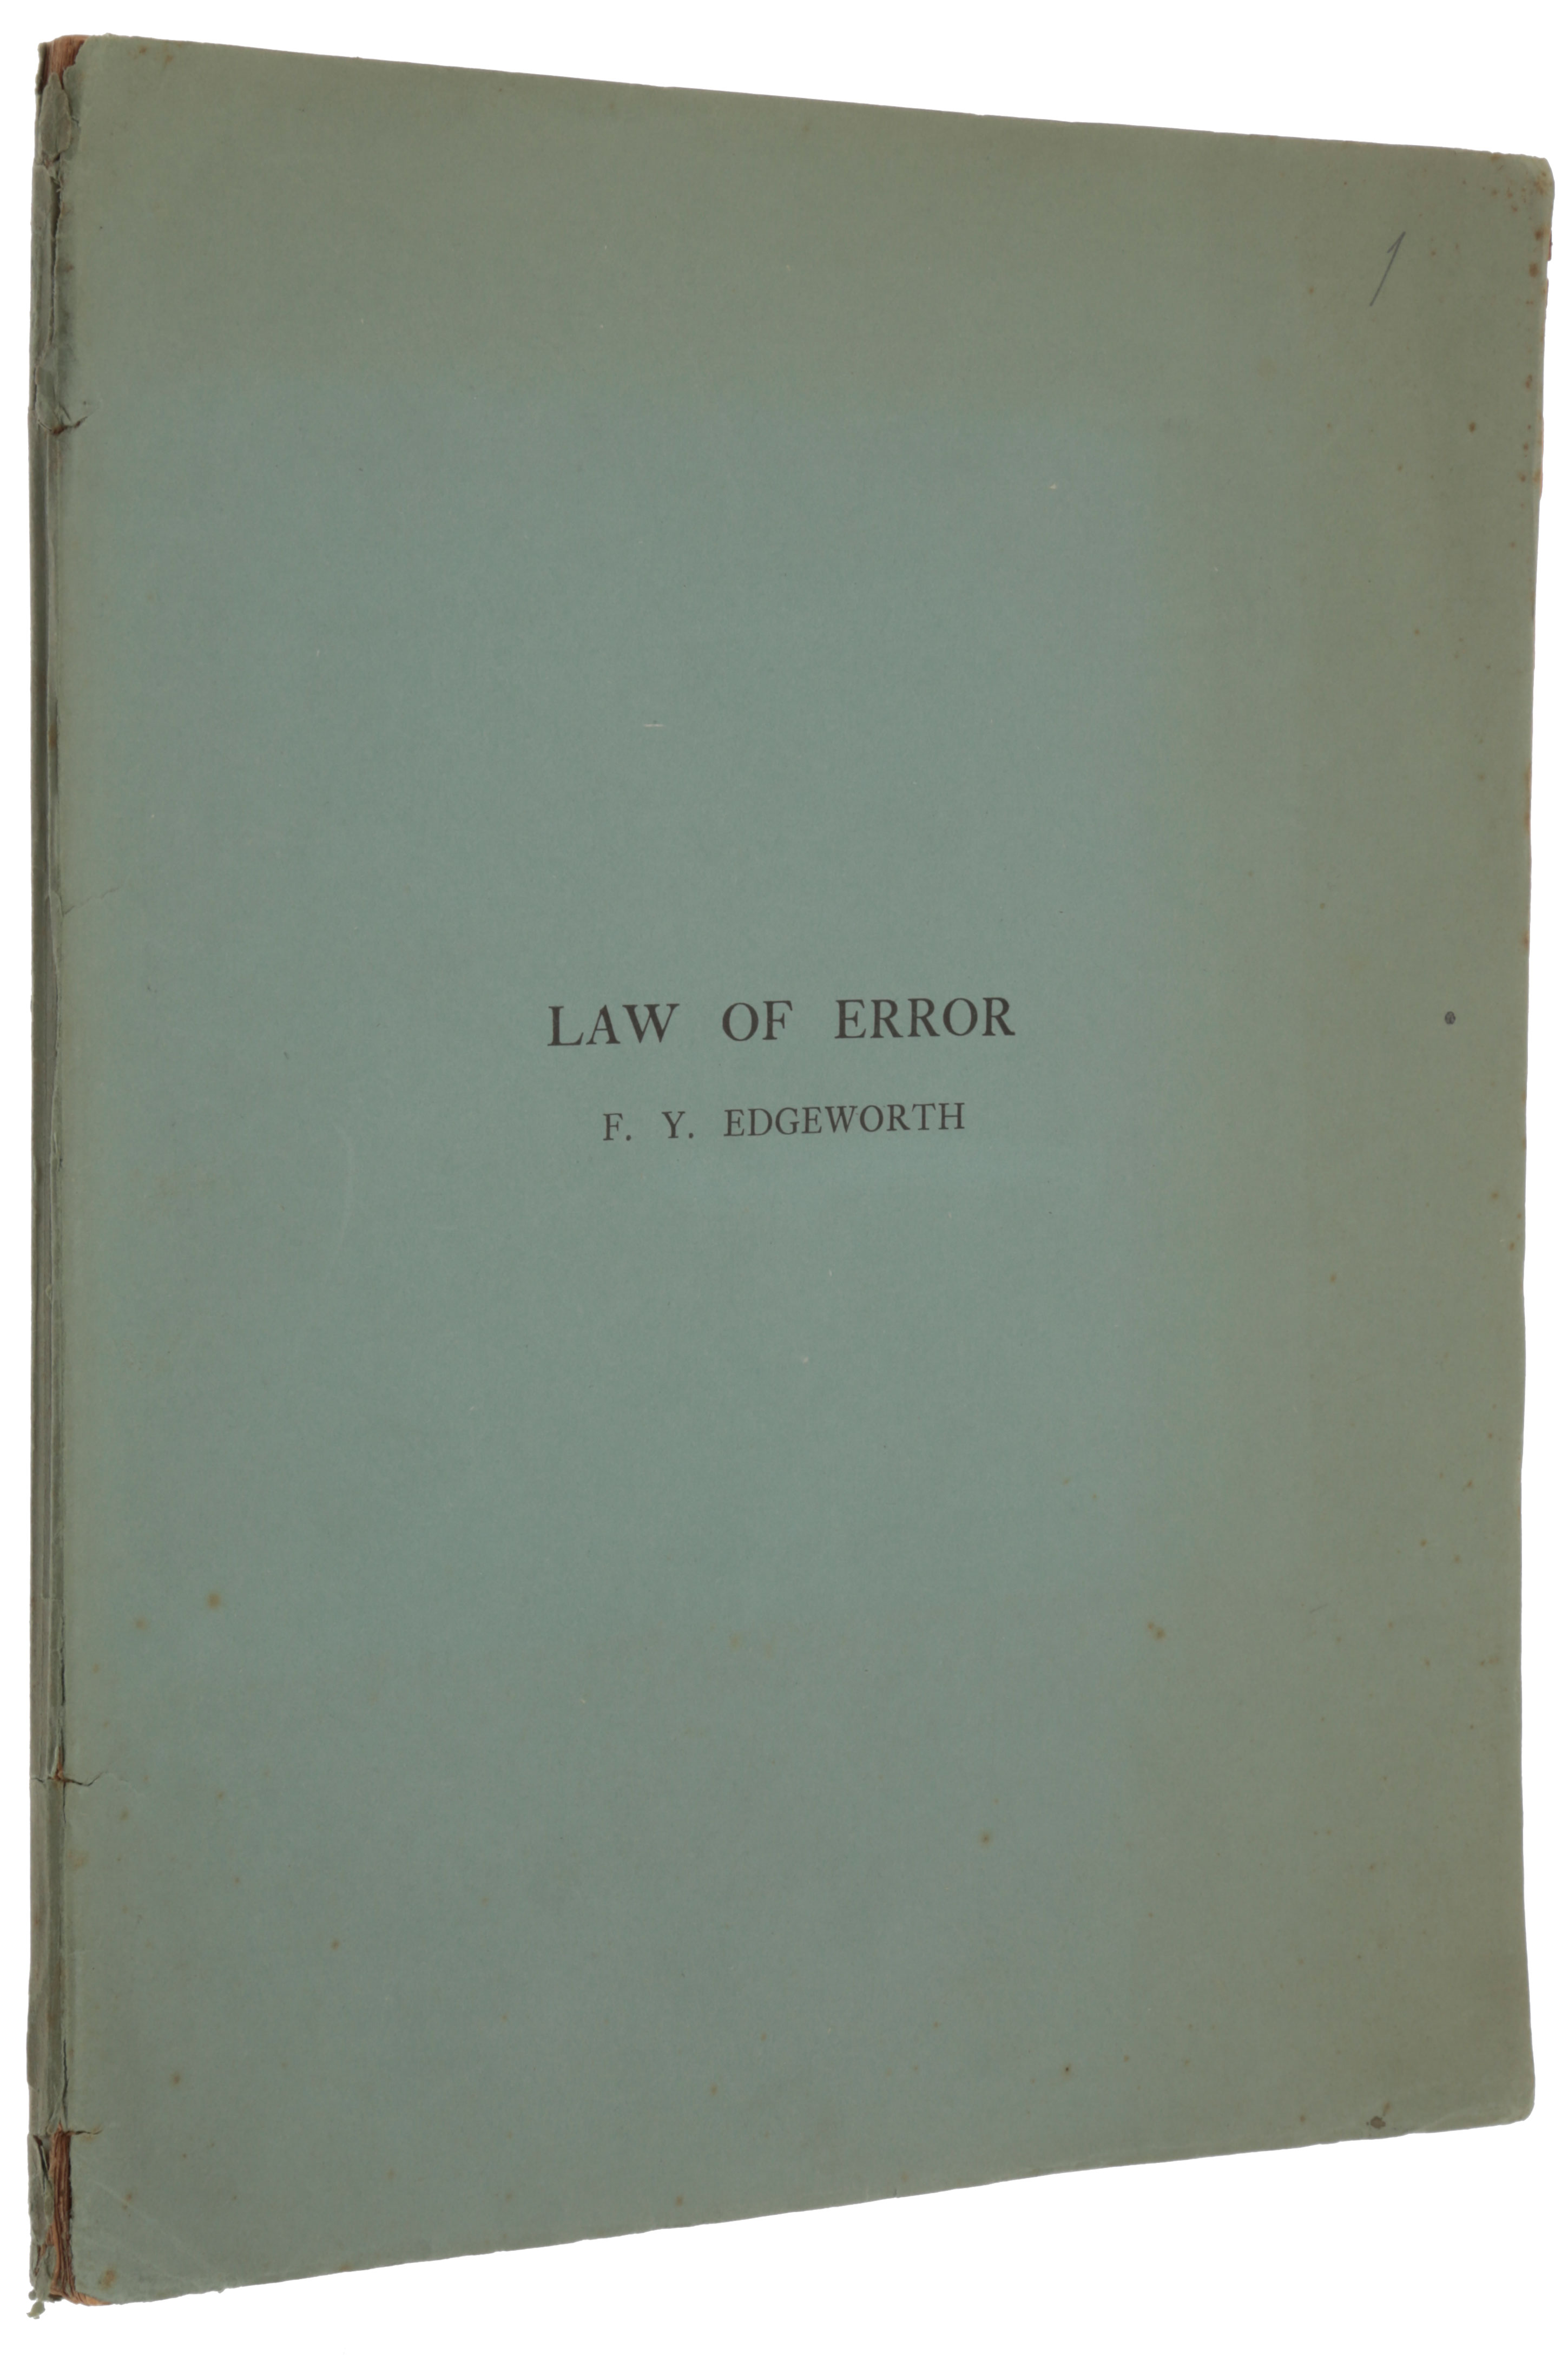 The law of error. Offprint from: Transactions of the Cambridge Philosophical Society, vol. 20, part I. Francis Ysidro EDGEWORTH.